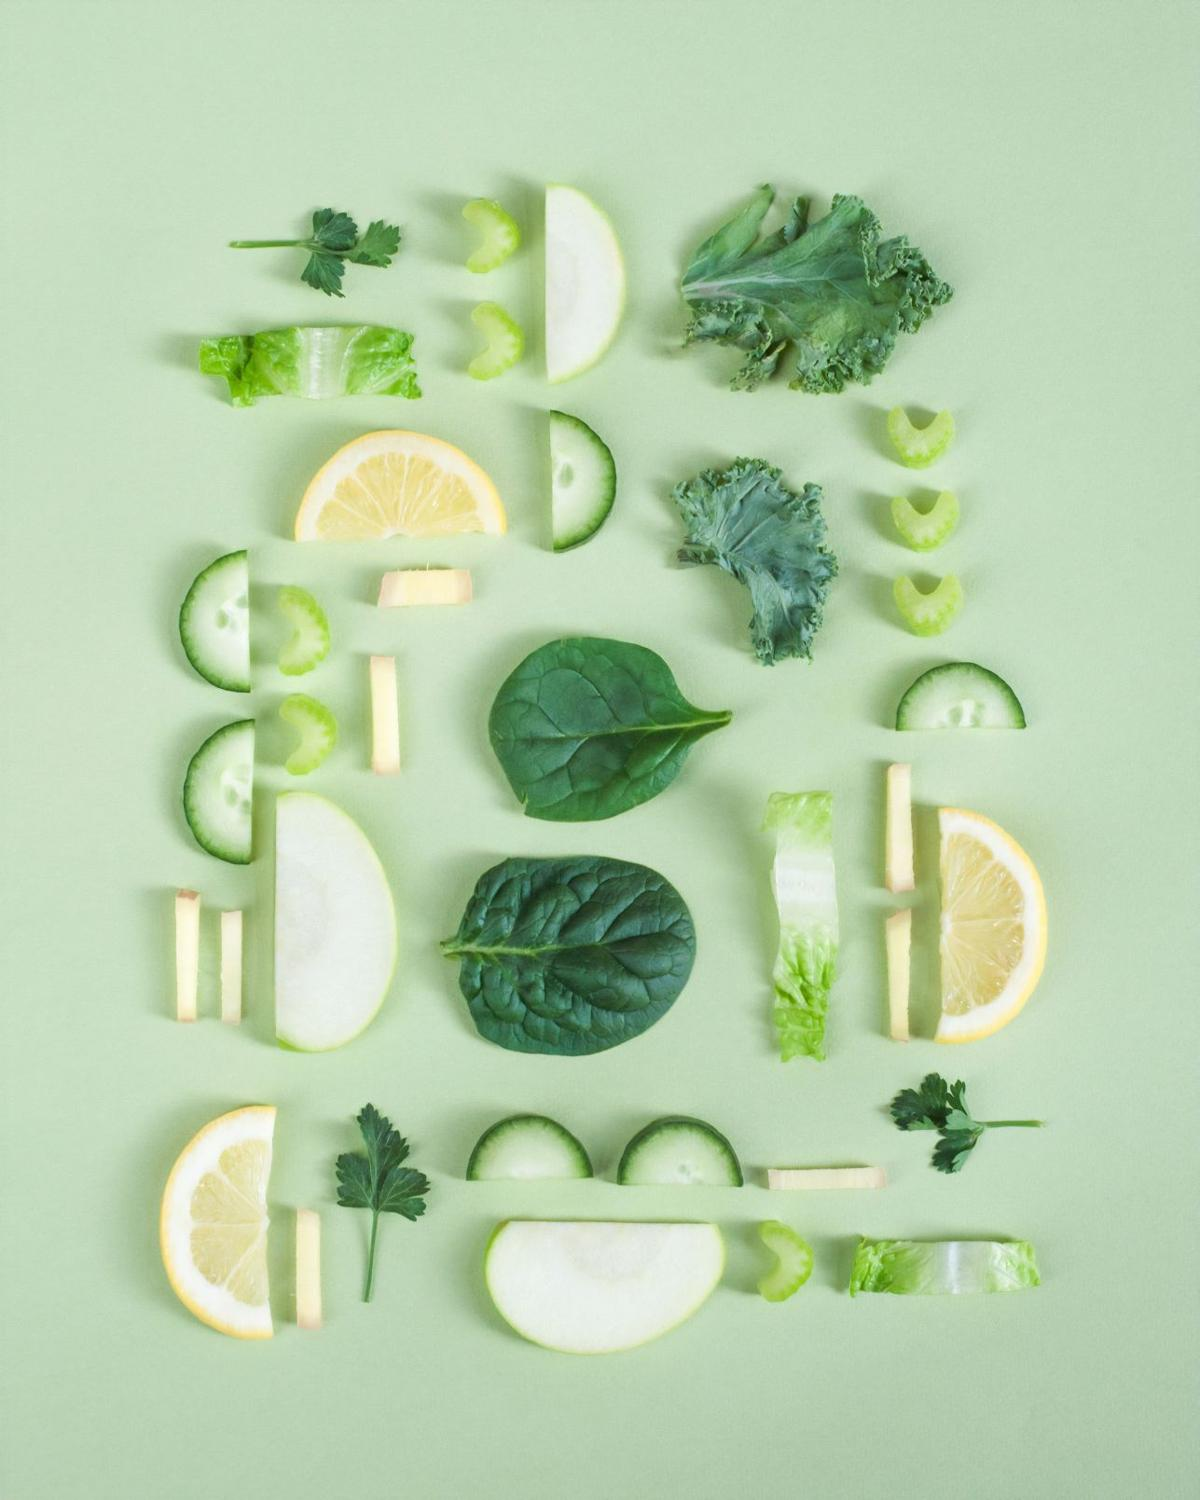 Fad diets and their physical effects